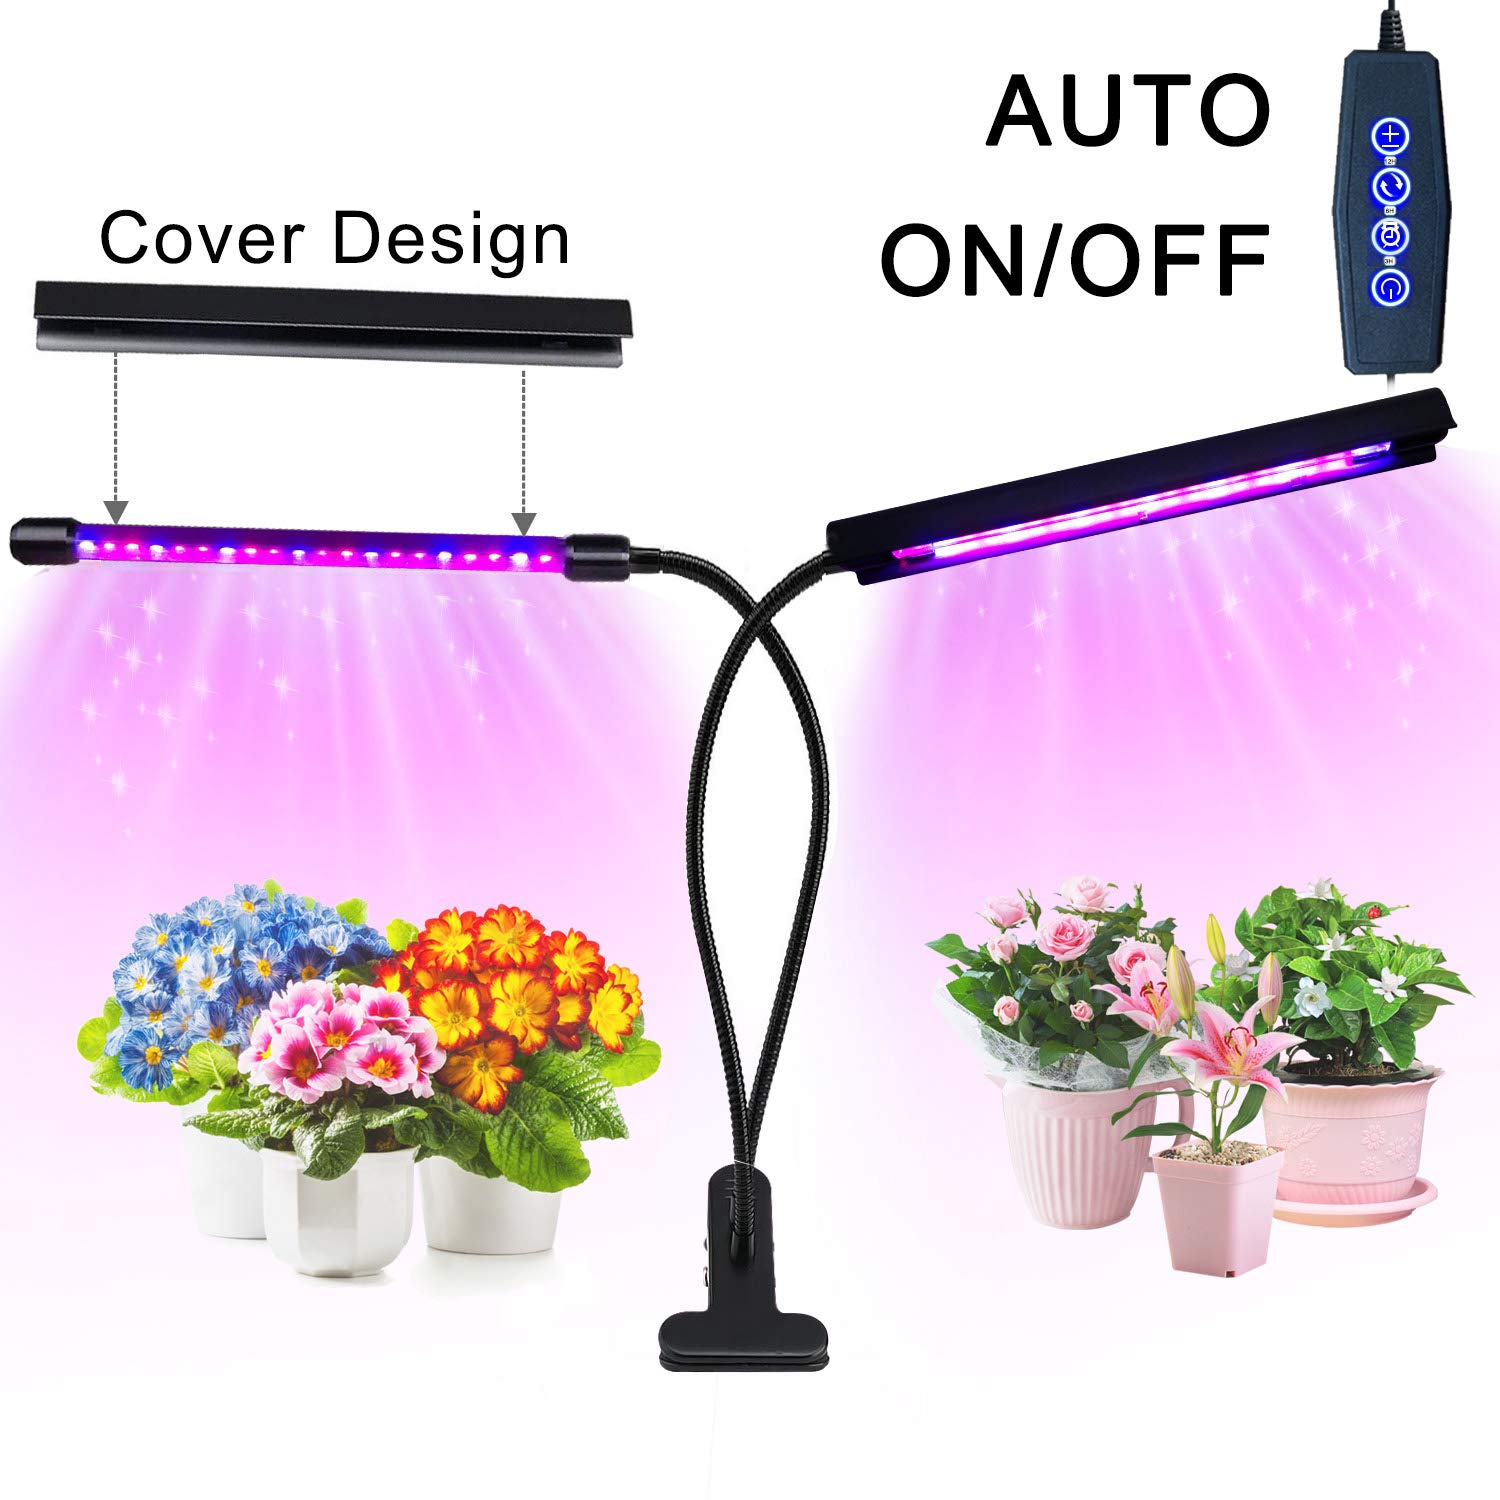 Grow Light, 20W 40 LED Bulbs Auto ON/OFF Plant Grow Lamp Dual Head Timing Grow Lights for Indoor Plants Seedlings with Red/Blue Spectrum Adjustable Gooseneck 3/6/12H Timer 5 Dimmable Levels by Eleclist